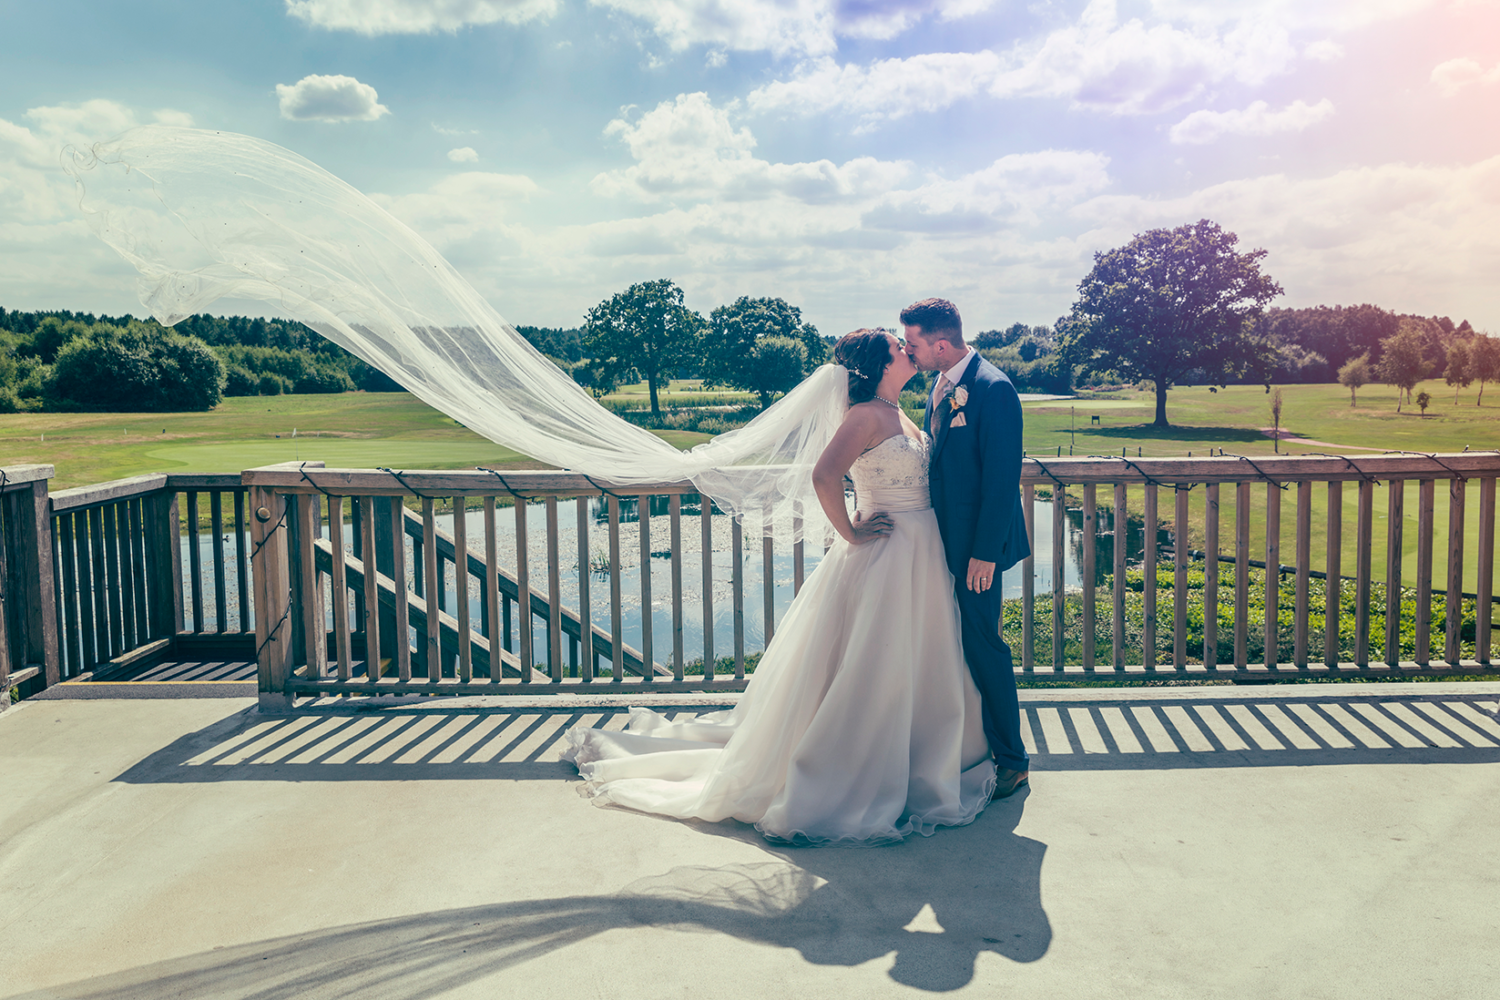 Bride and groom stood on the balcony at Sandburn Hall in York, with the vail blowing in the wind. Wedding Photography by Charlotte Atkinson